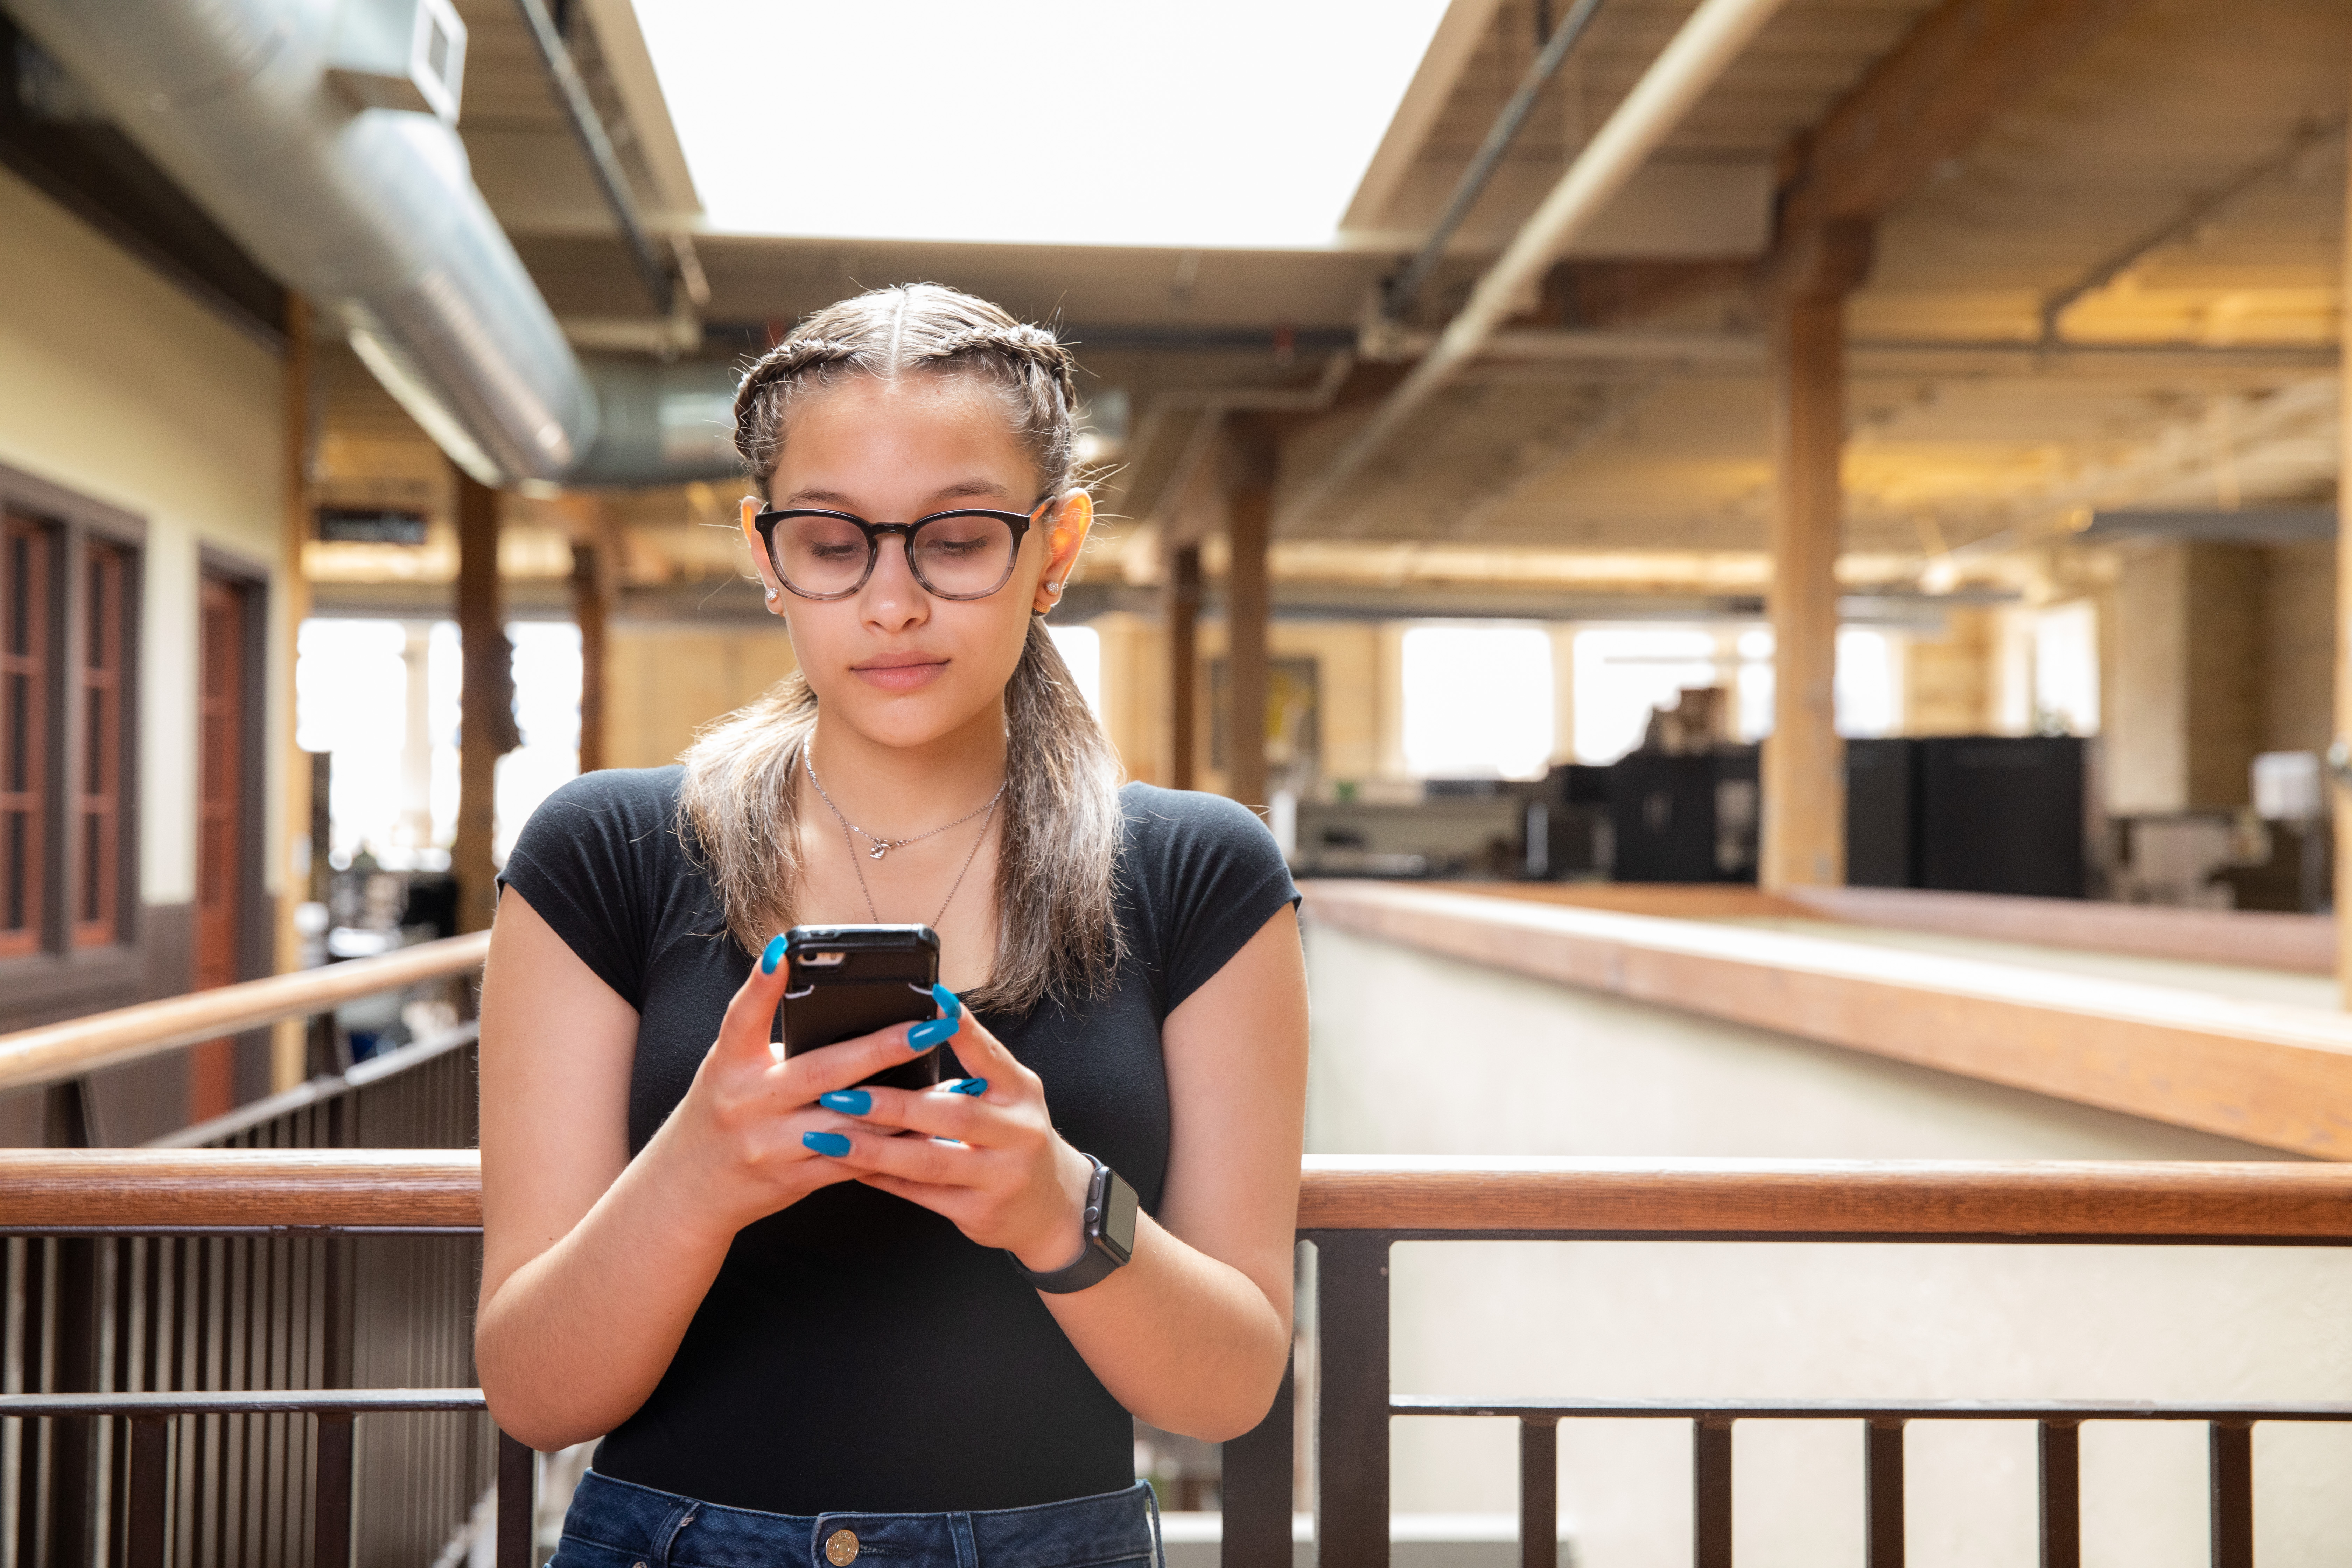 Teen girl using phone while leaning against railing